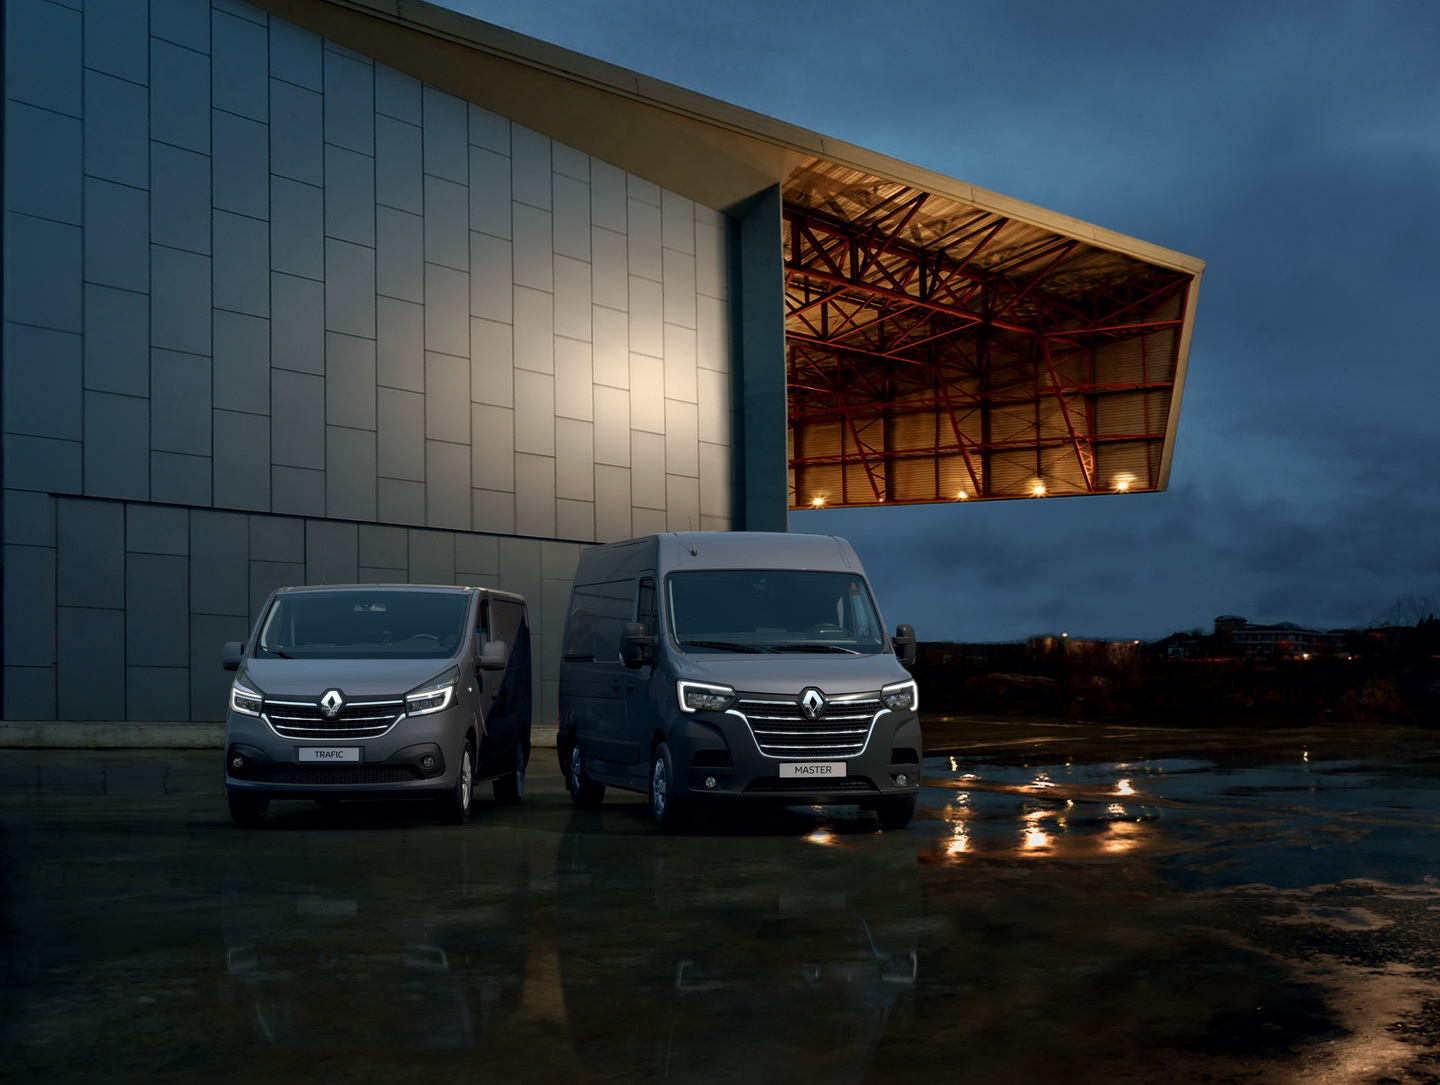 New 2019 Renault Trafic facelift 16